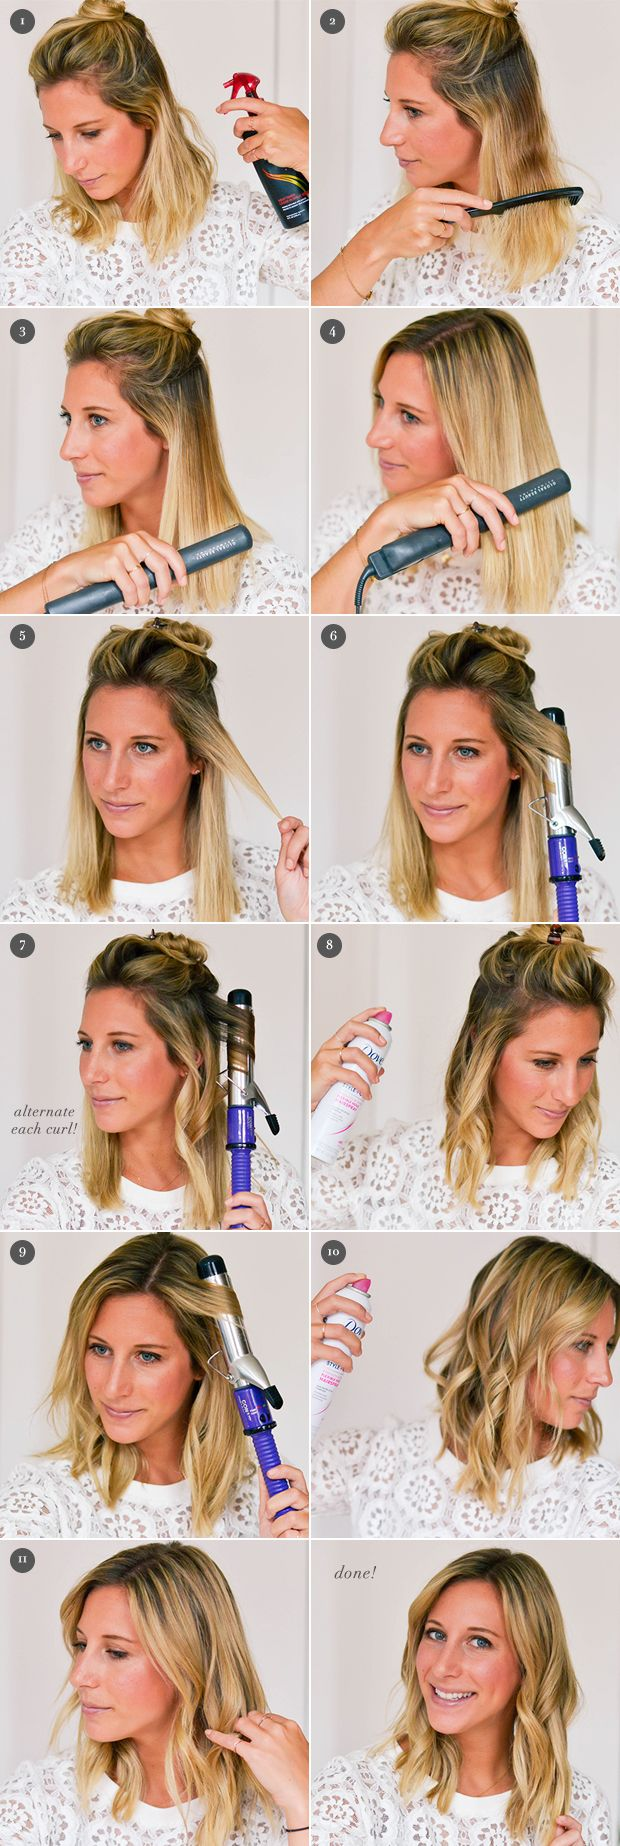 25+ Best Ideas About Beach Waves Tutorial On Pinterest